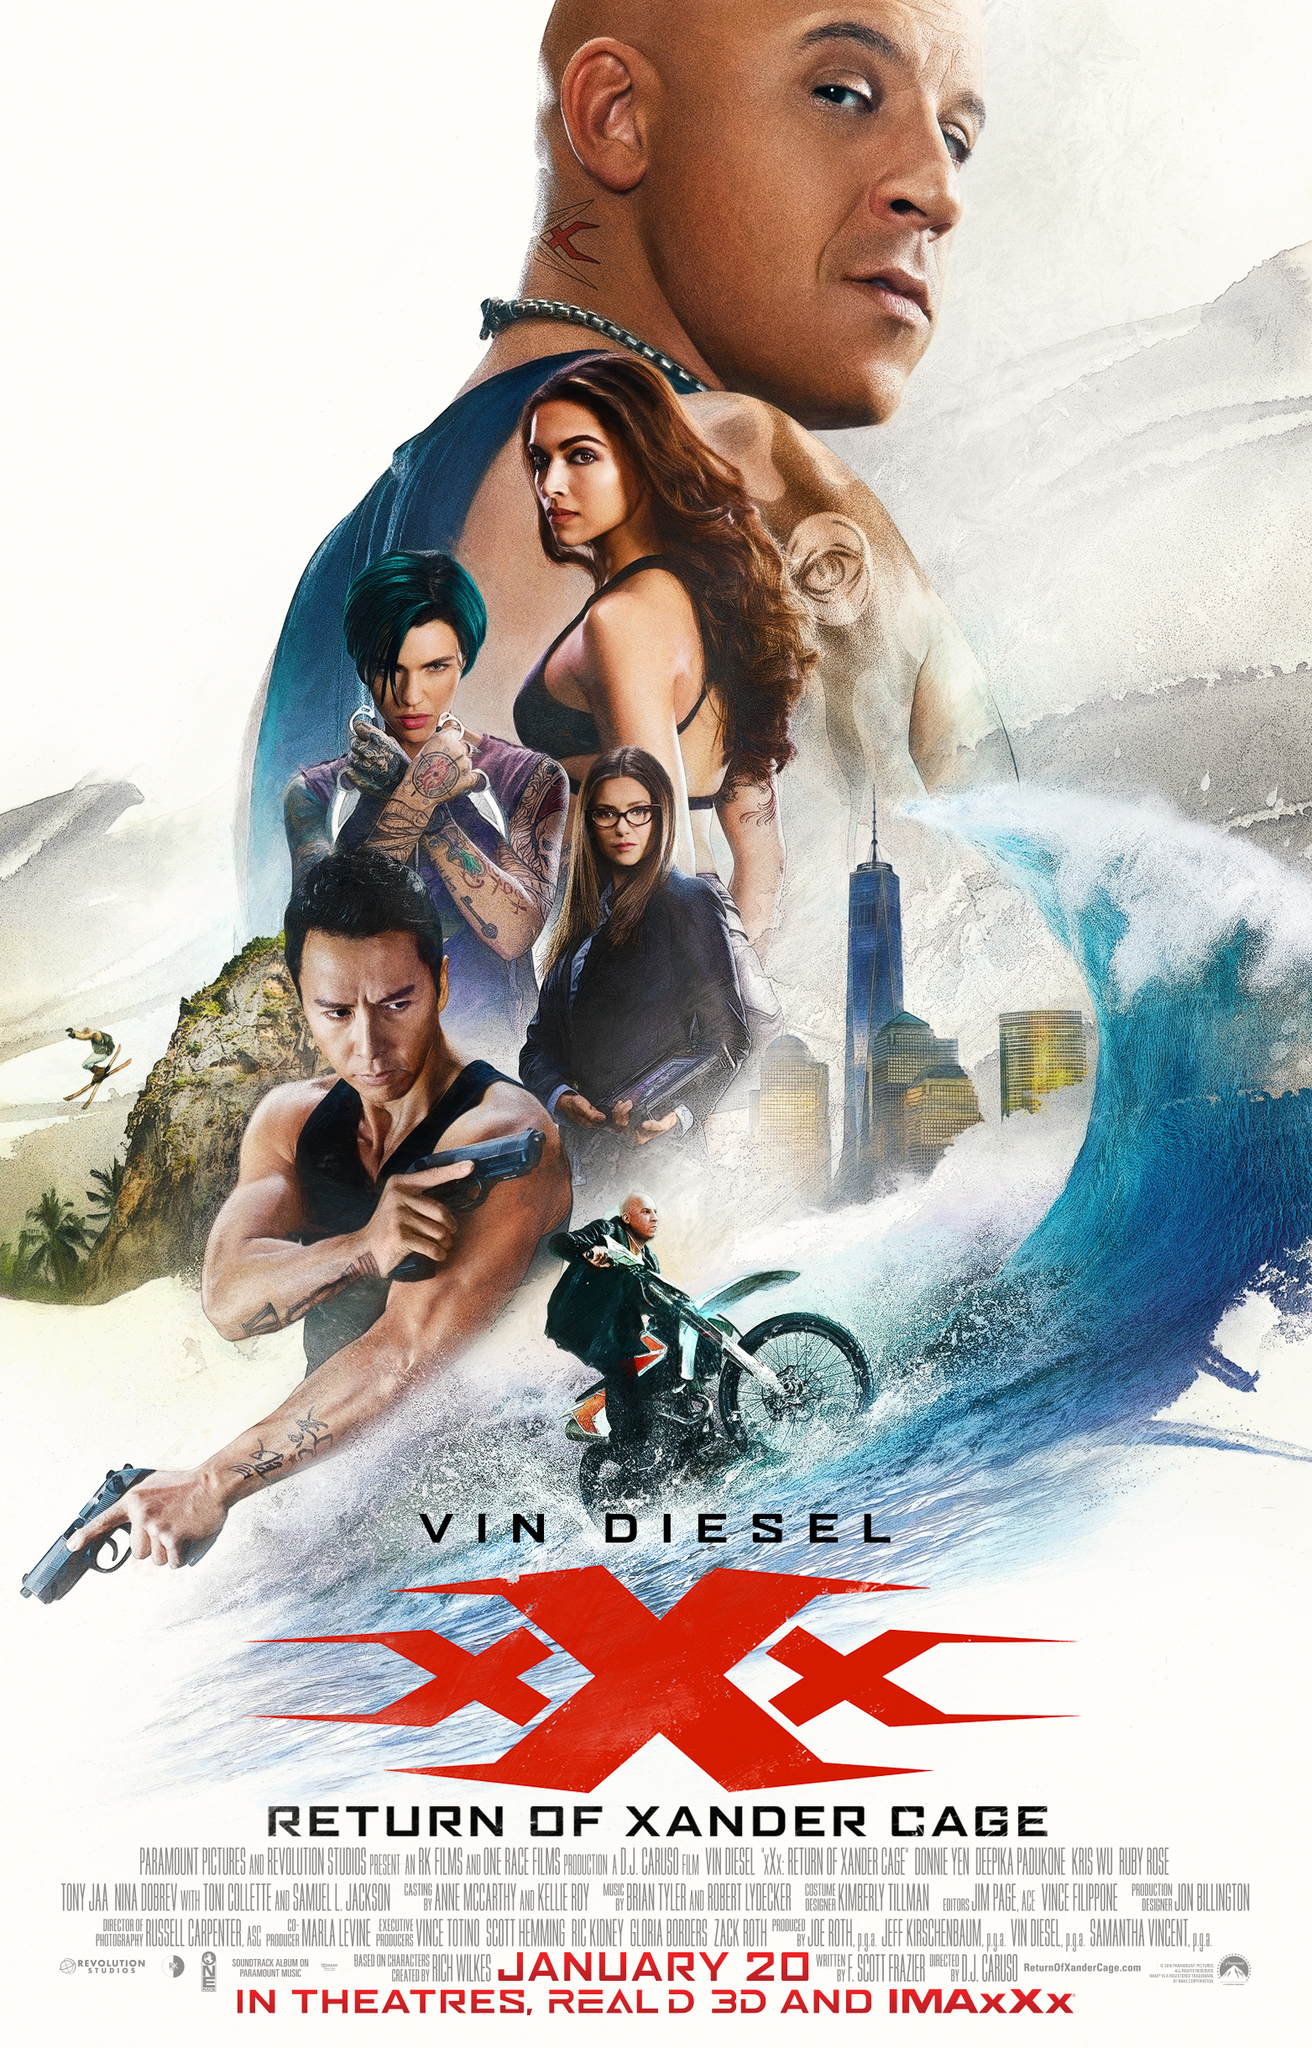 xXx: Return of Xander Cage (2017) - IMDb